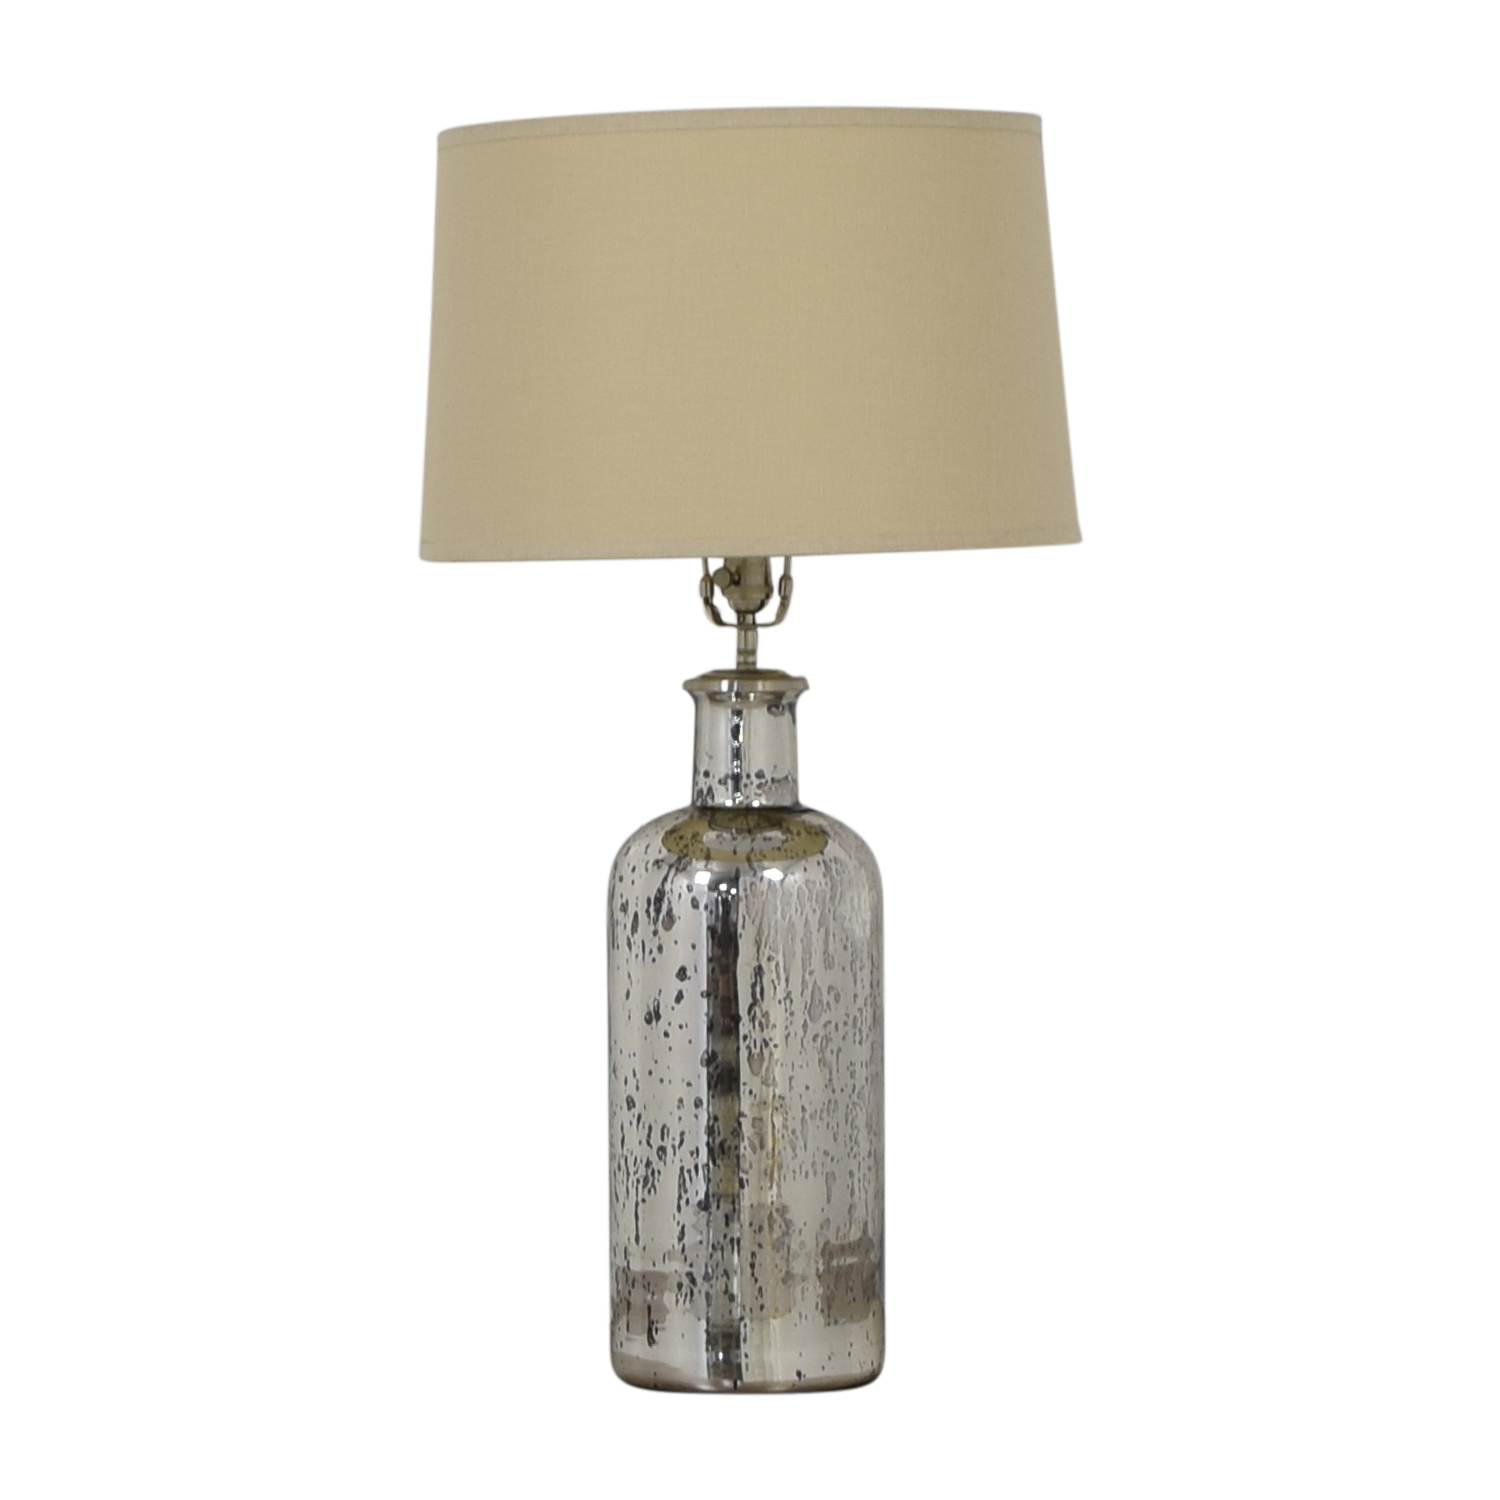 Restoration Hardware 19th C. Vintage Mercury Glass Medium Table Lamp sale